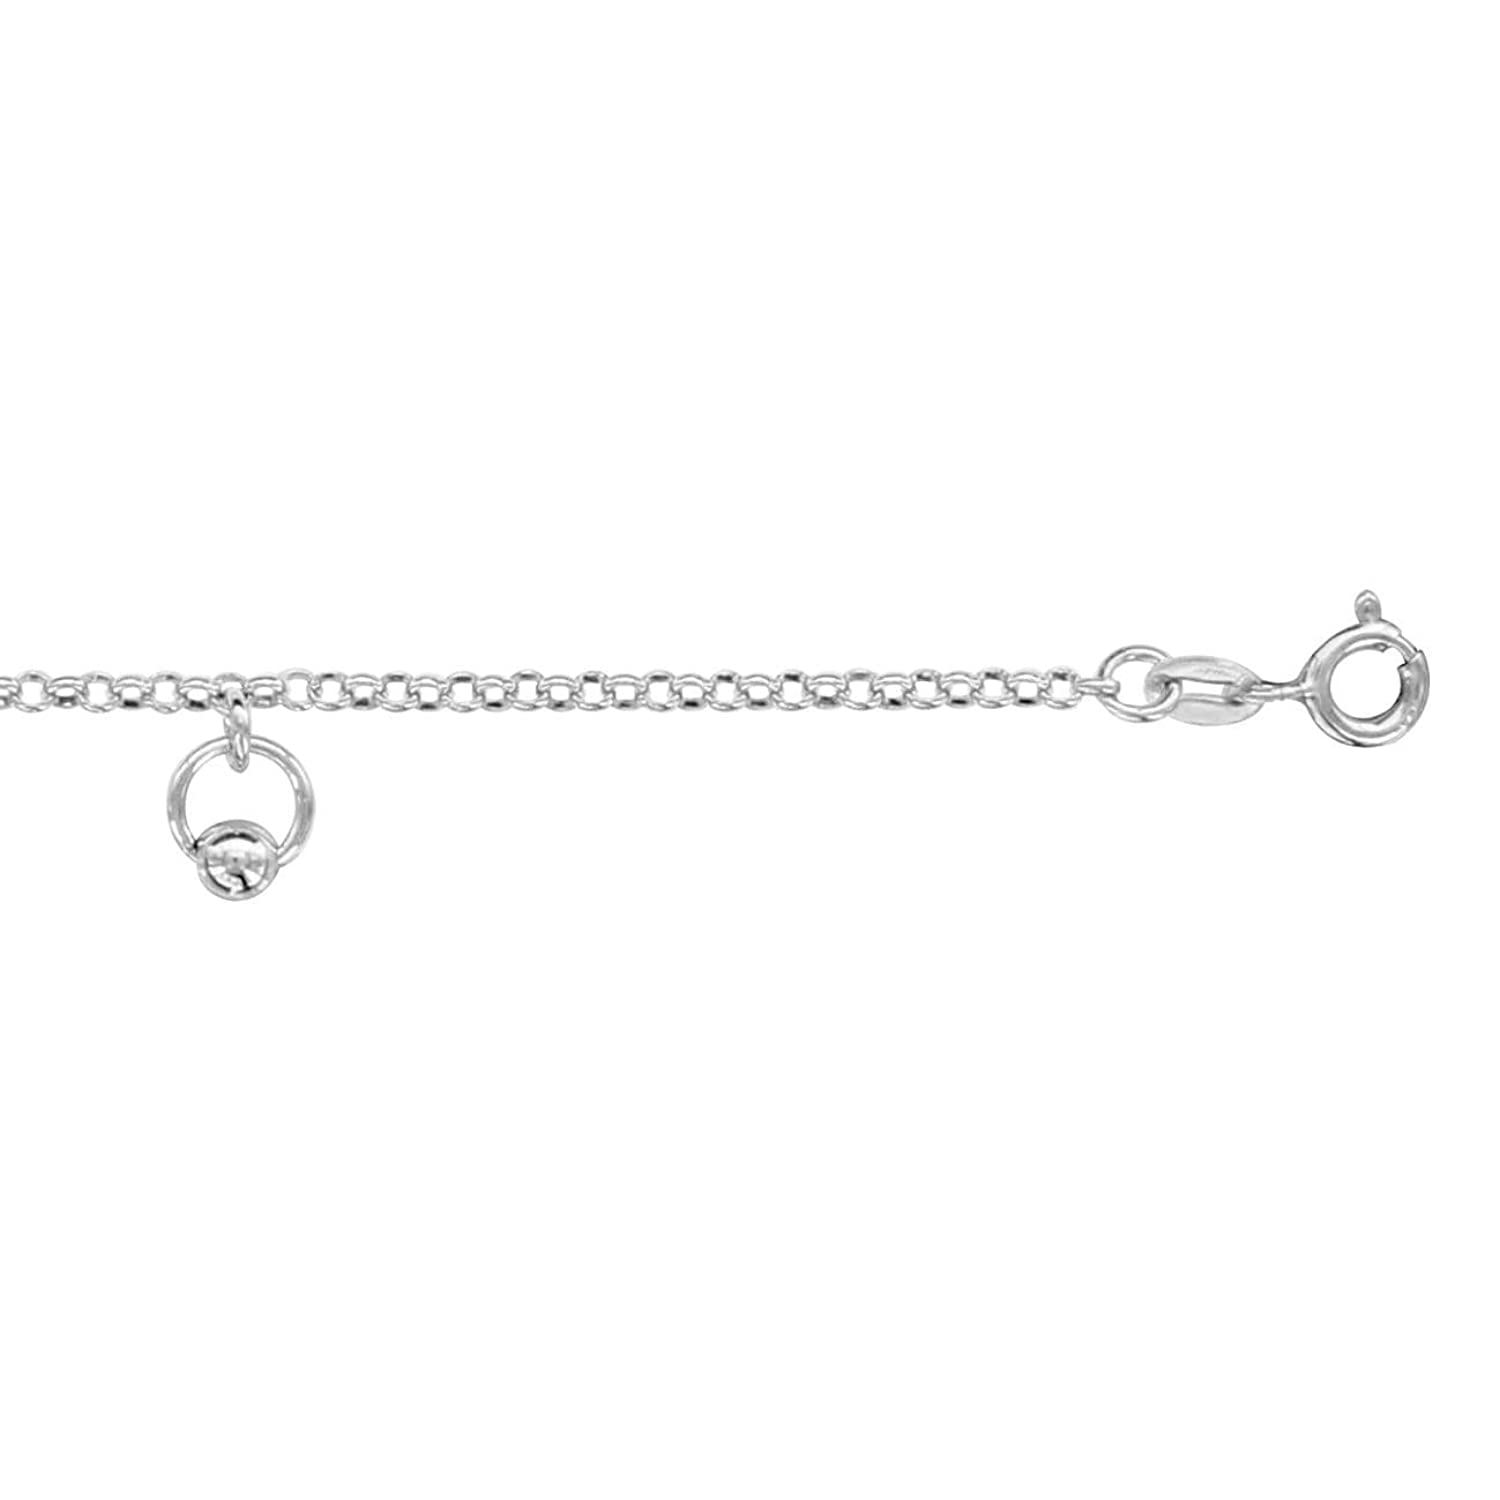 So Chic Jewels - 925 Sterling Silver Adjustable Length: 20 to 24 cm Rings & Balls Charms Chain Anklet